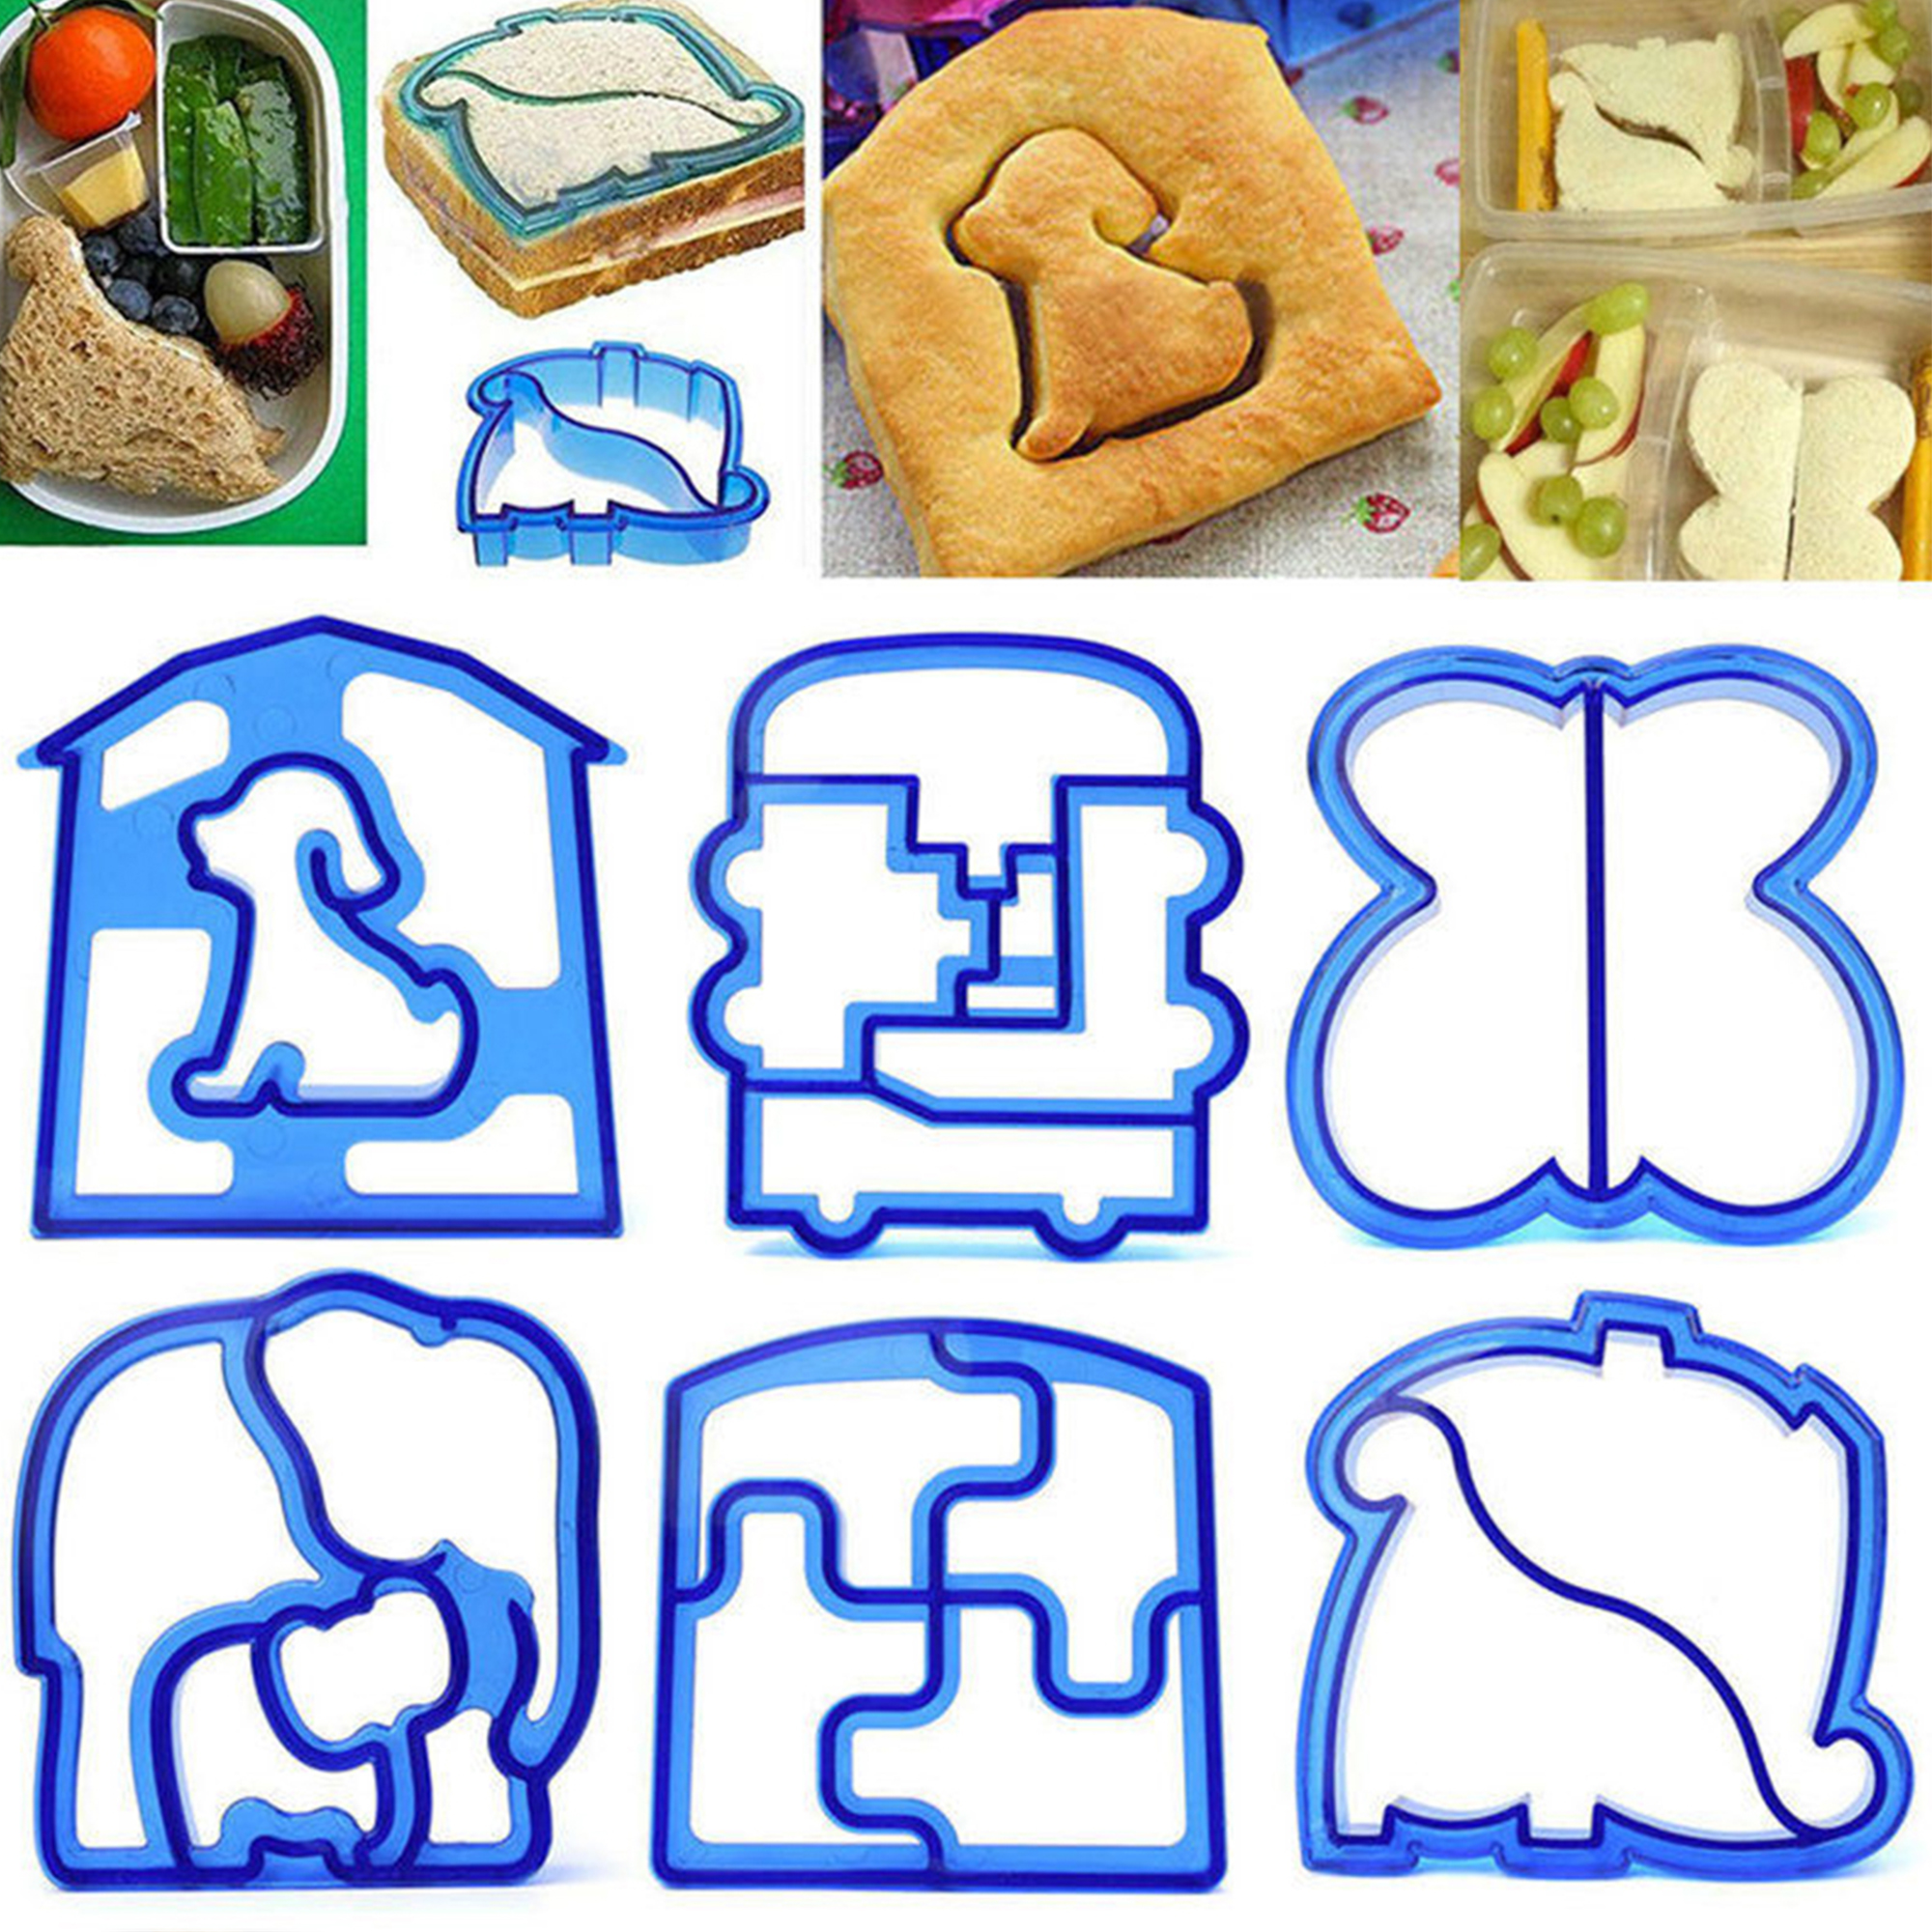 CUH Sandwich Toast Cookies Cutters Cake Bread Biscuit Food Mold Mould Dinosaur